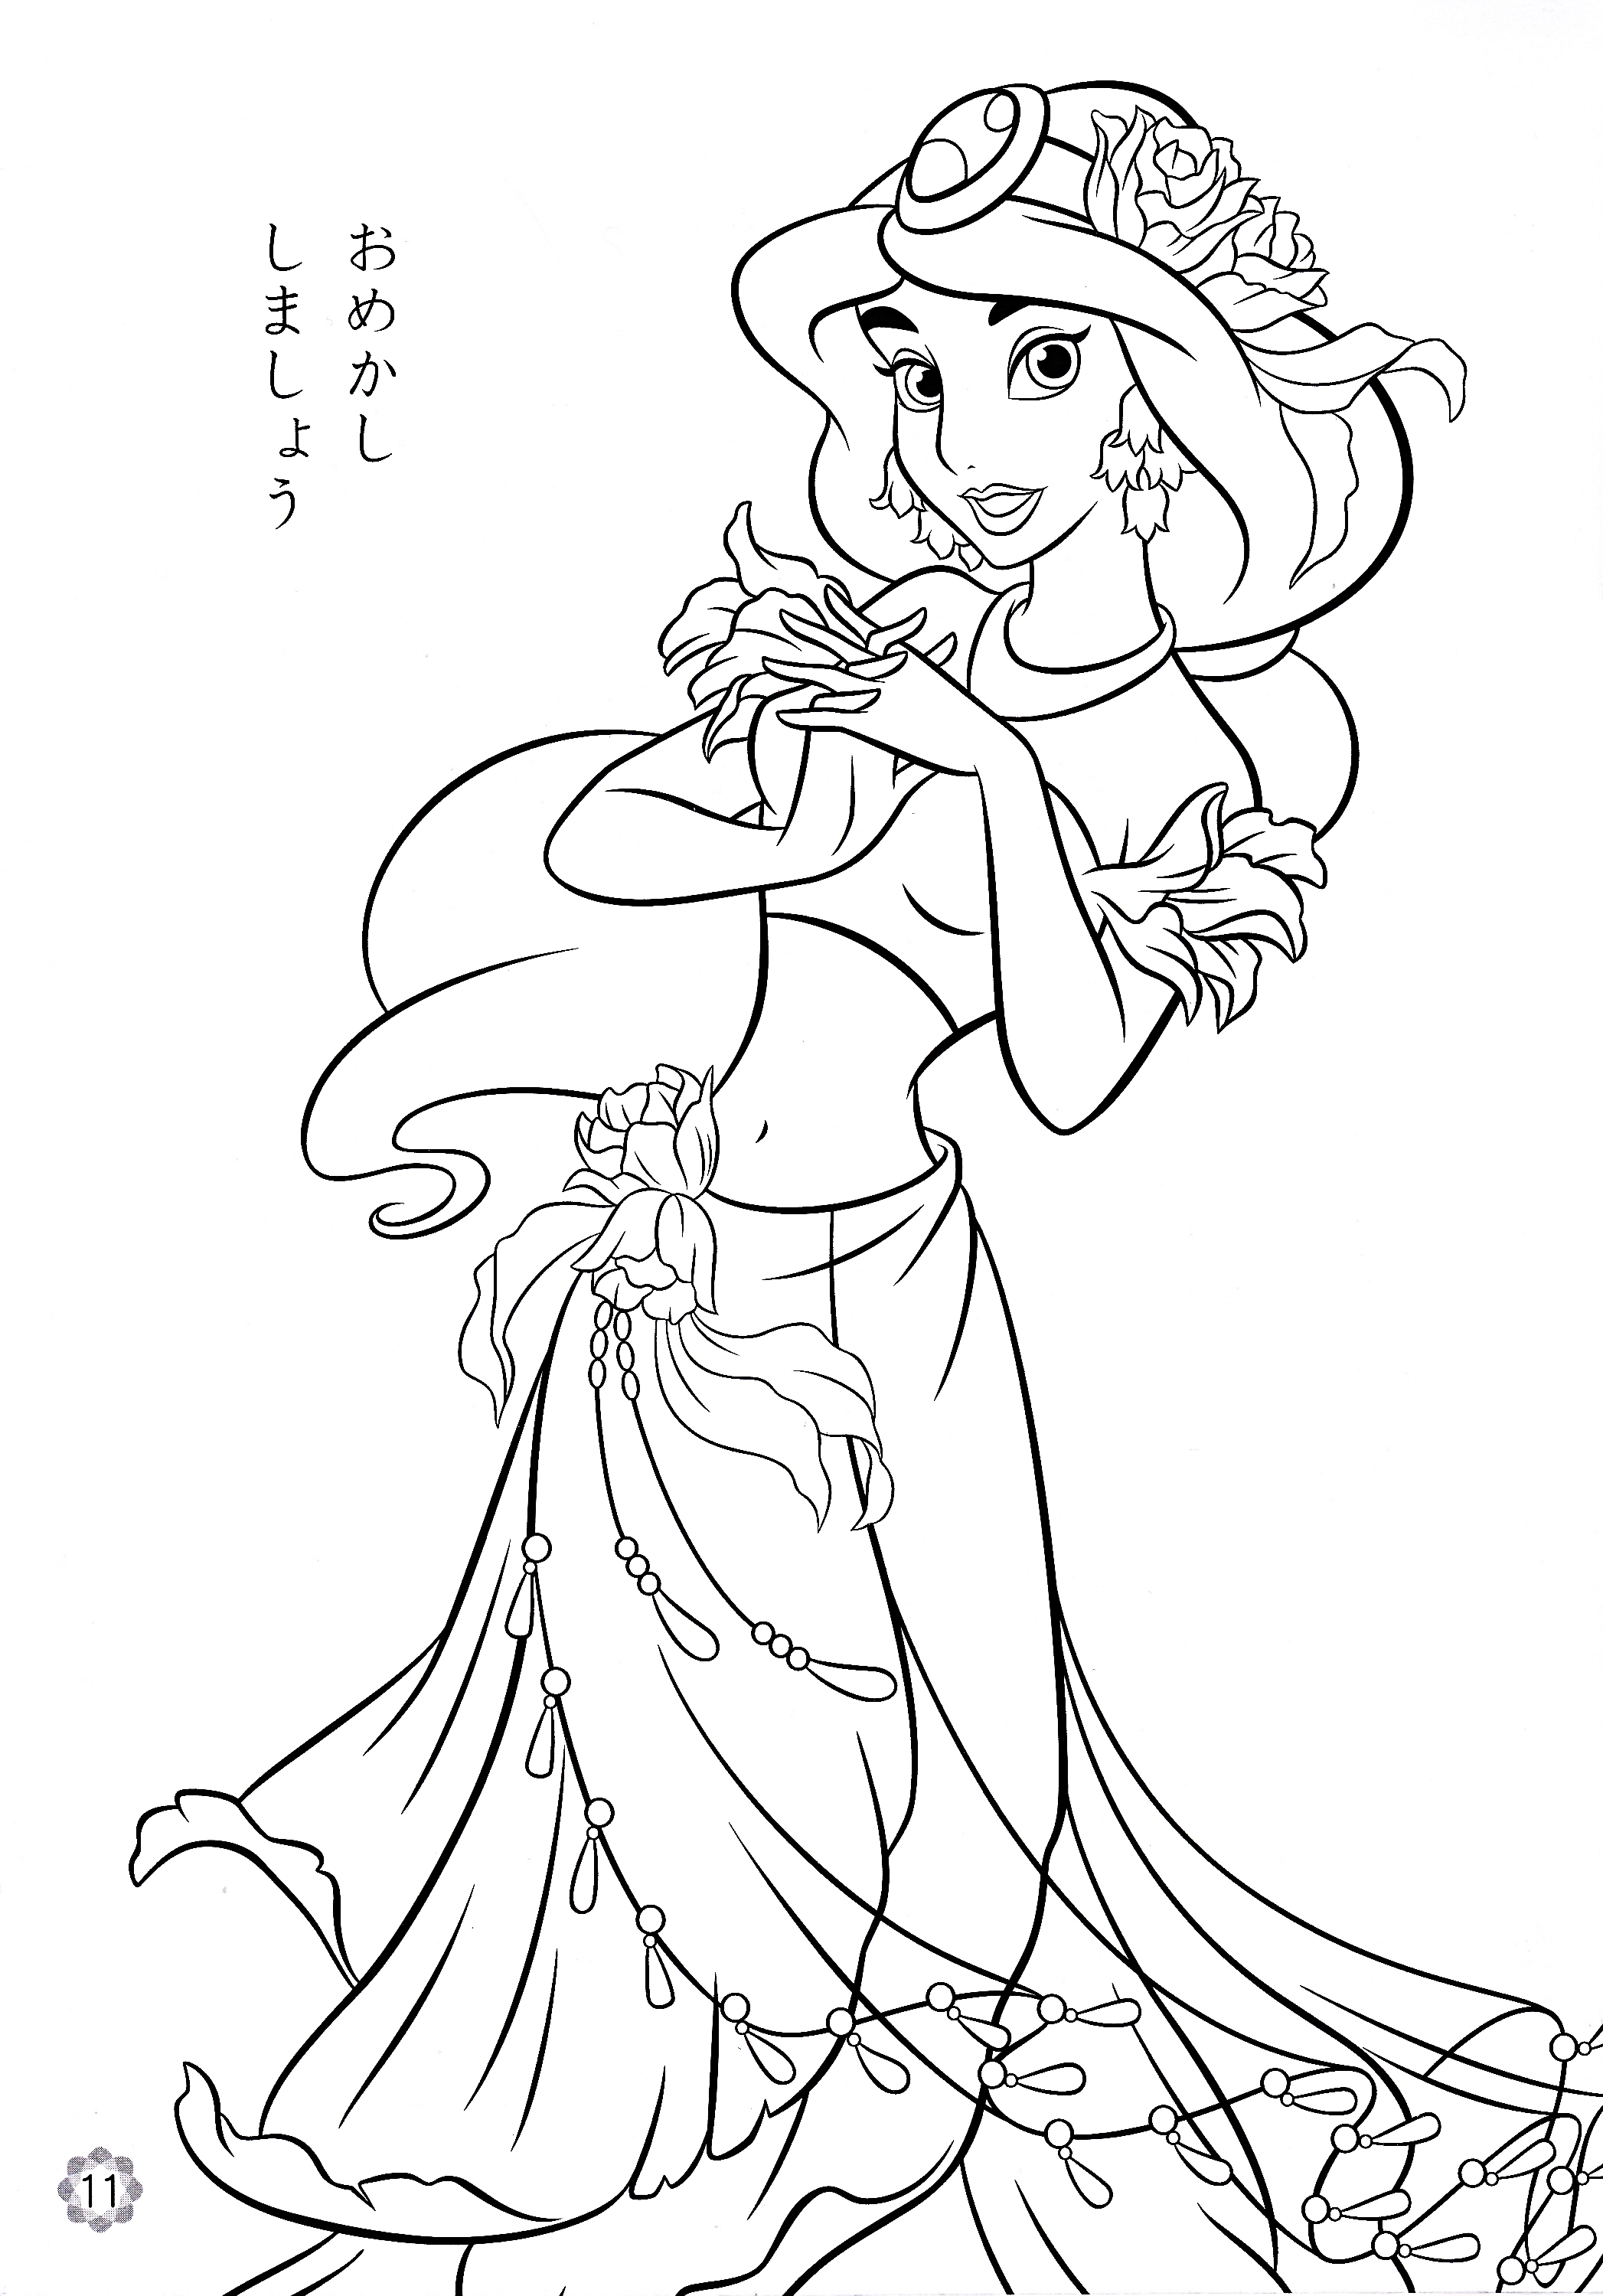 disney princess jasmine coloring pages - photo#11